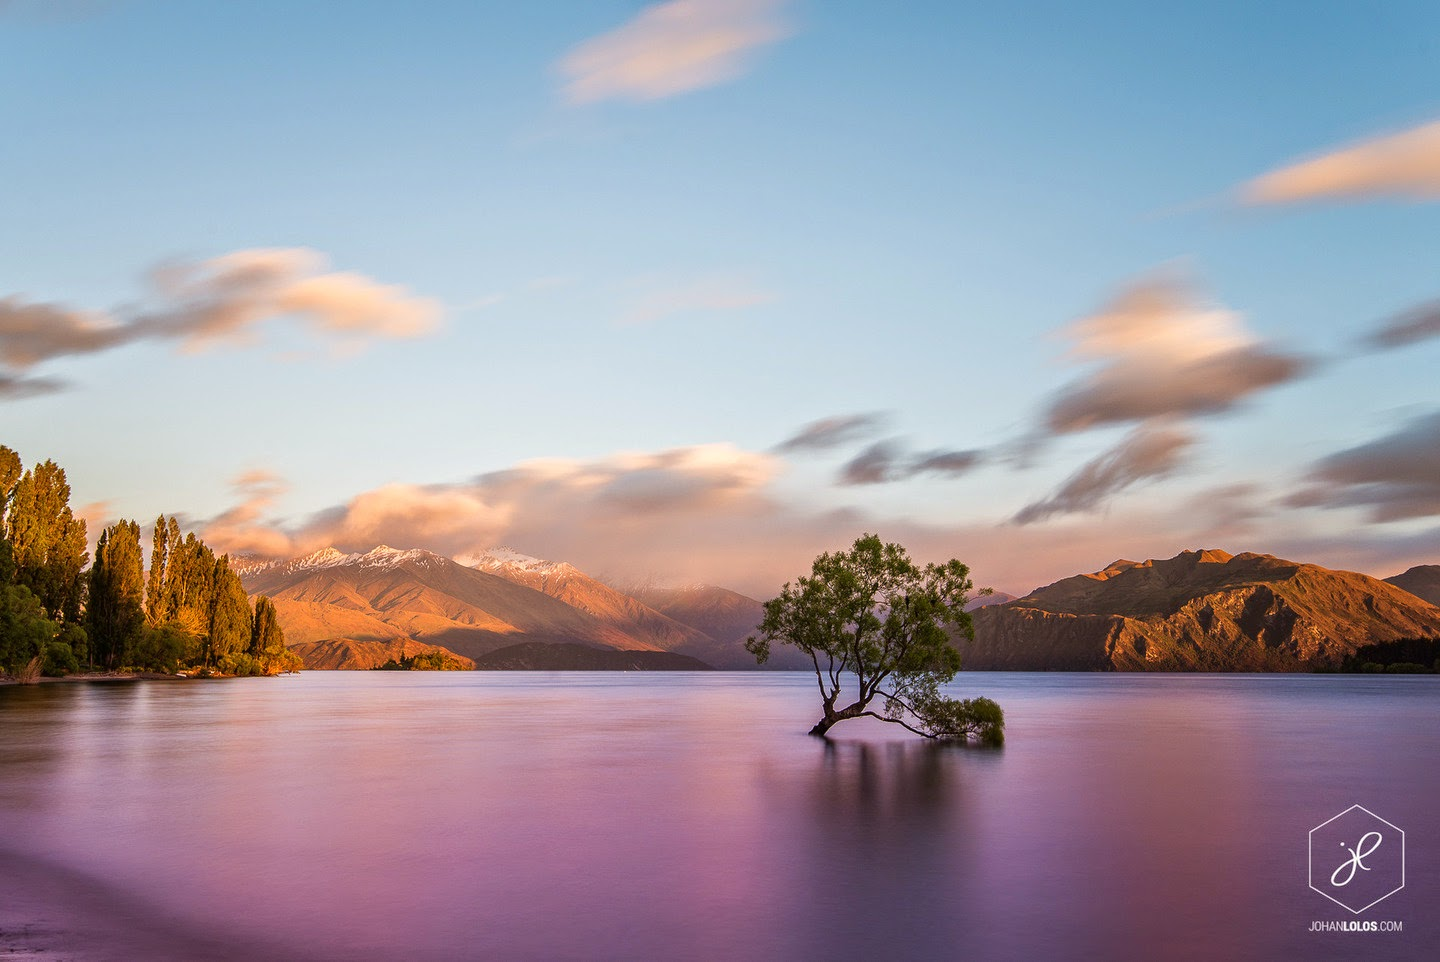 Lake Wanaka - He Traveled Around New Zealand In A Camper Van… This Is What He Saw.